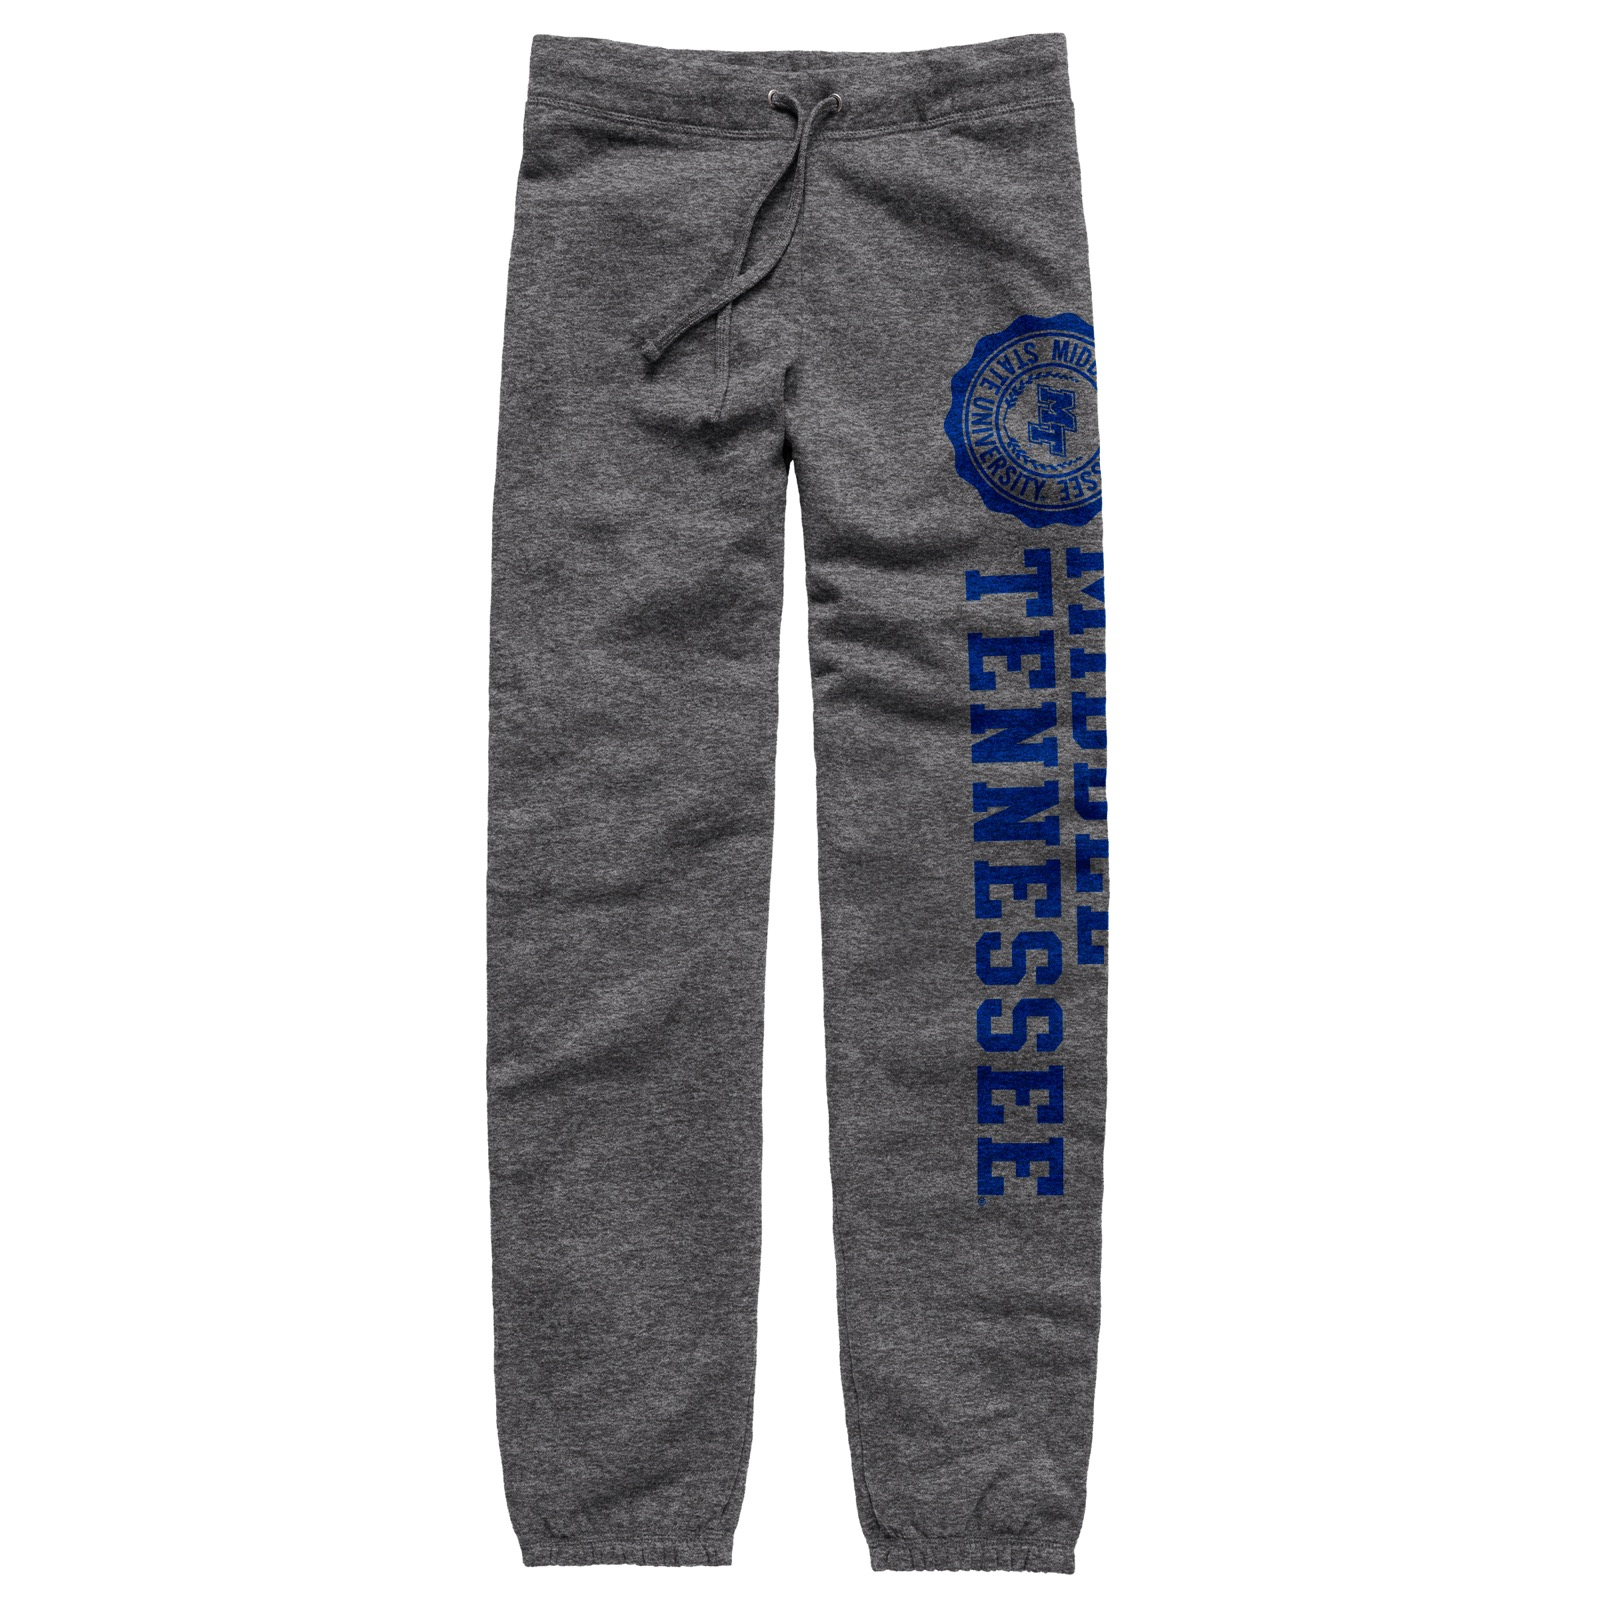 Middle Tennessee Victory Springs Women's Sweatpants